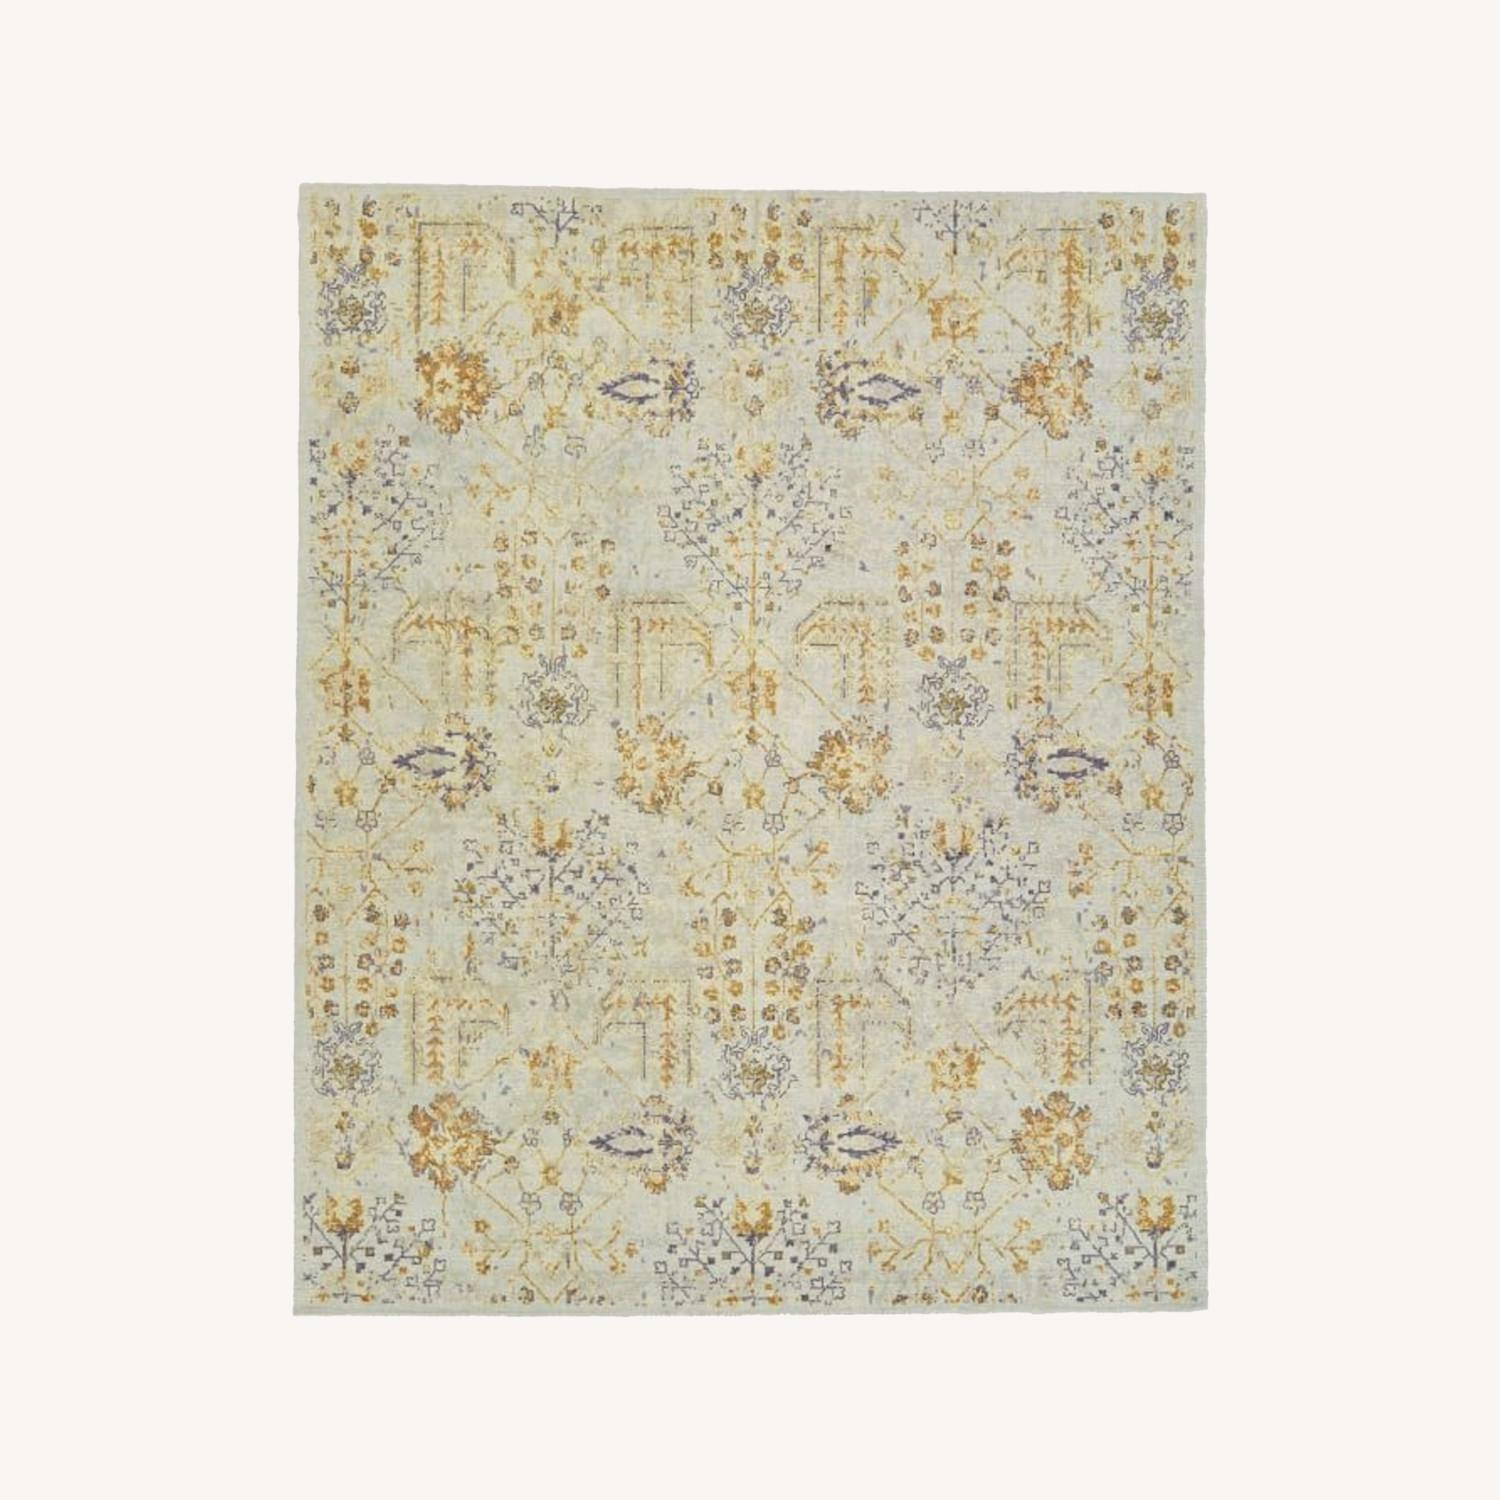 West Elm Printed Canopy Rug, Frost Gray - image-0